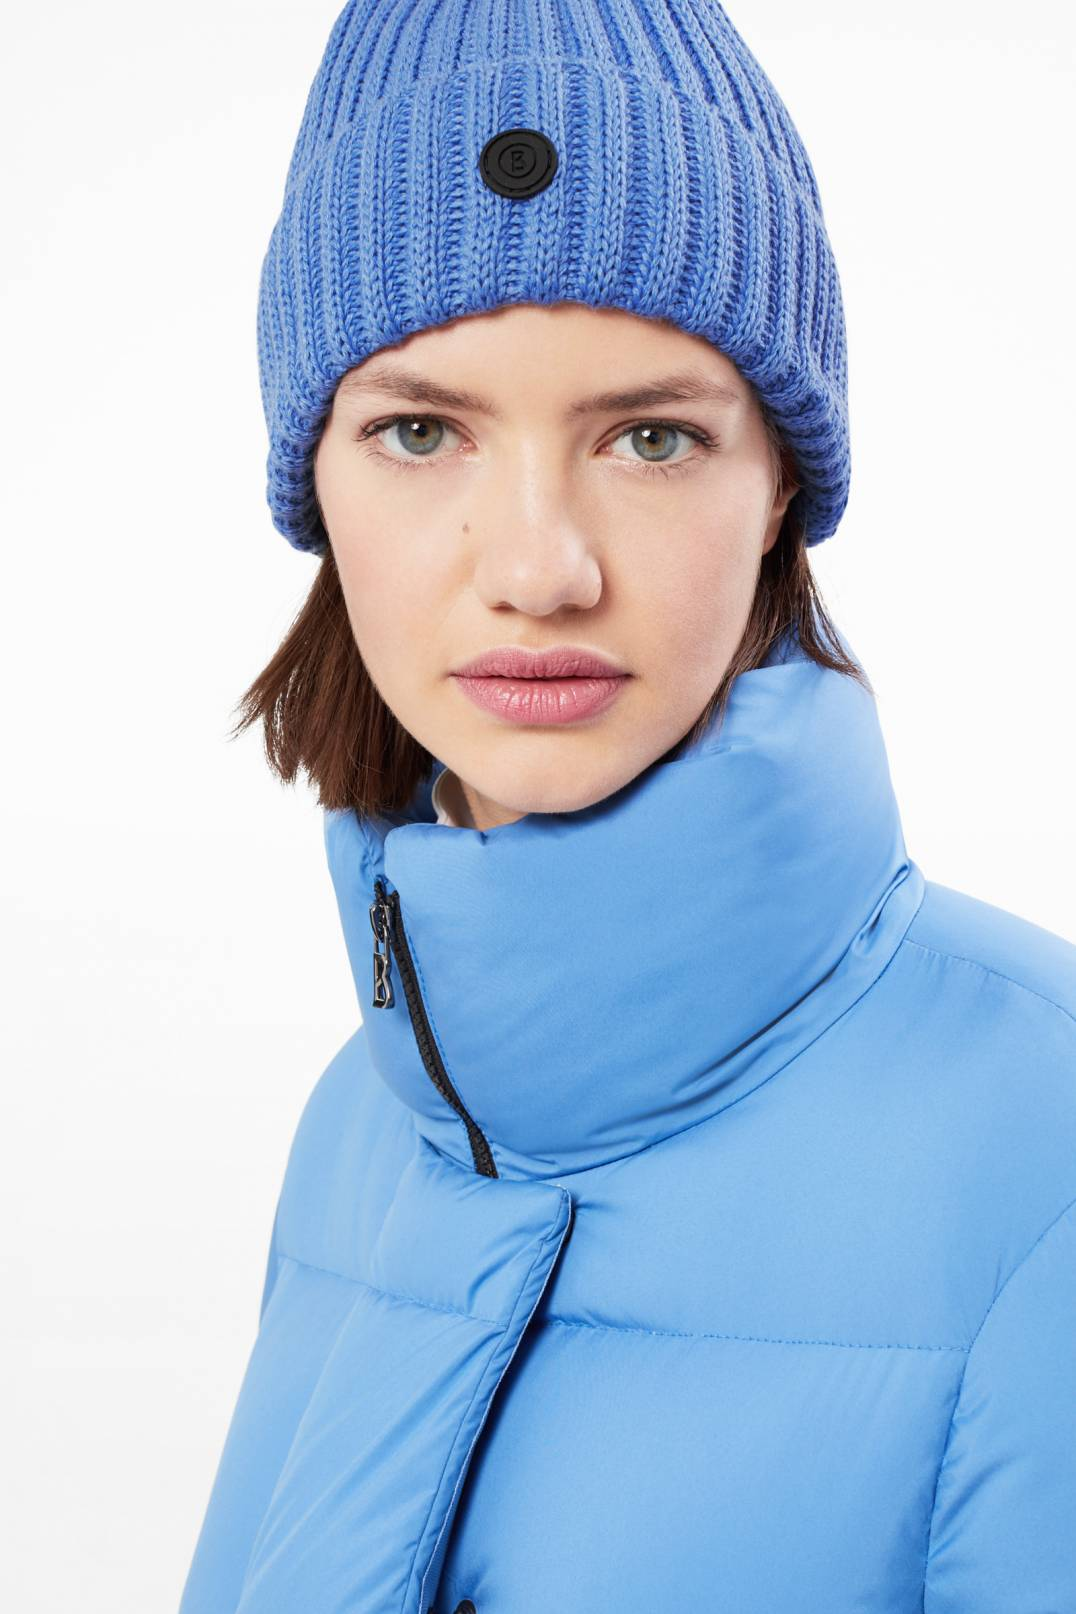 b1c6fff689d Bogner Emira Knitted cap in Azure blue for Women